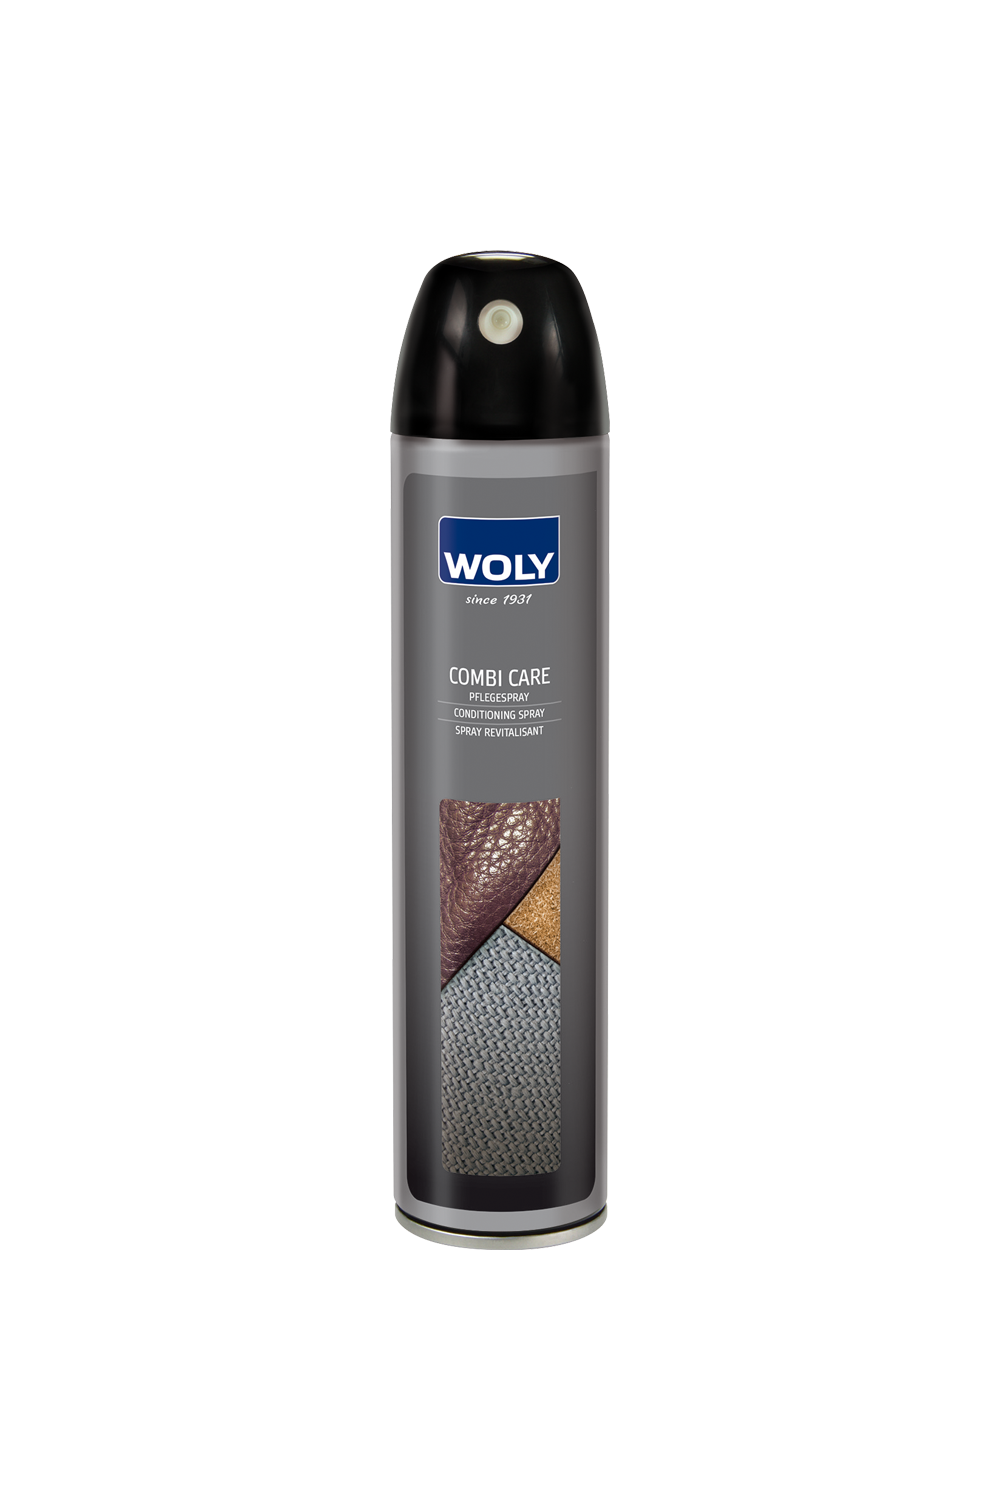 Woly Combi Care 300ml.